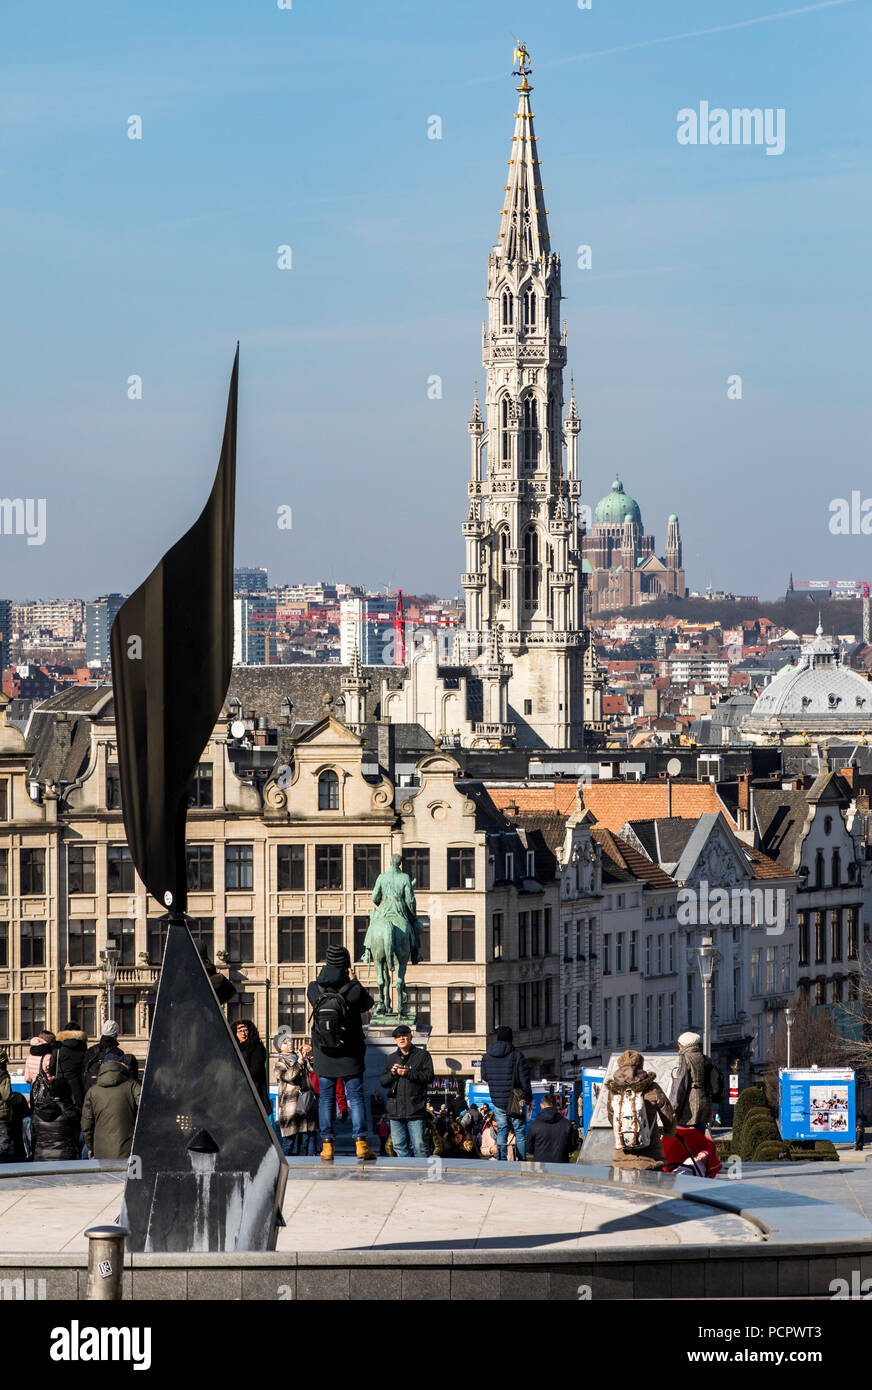 View from the art mountain, Monte des Arts, to downtown Brussels, tower of the historic town hall, behind the church National Basilica of the Sacred H - Stock Image